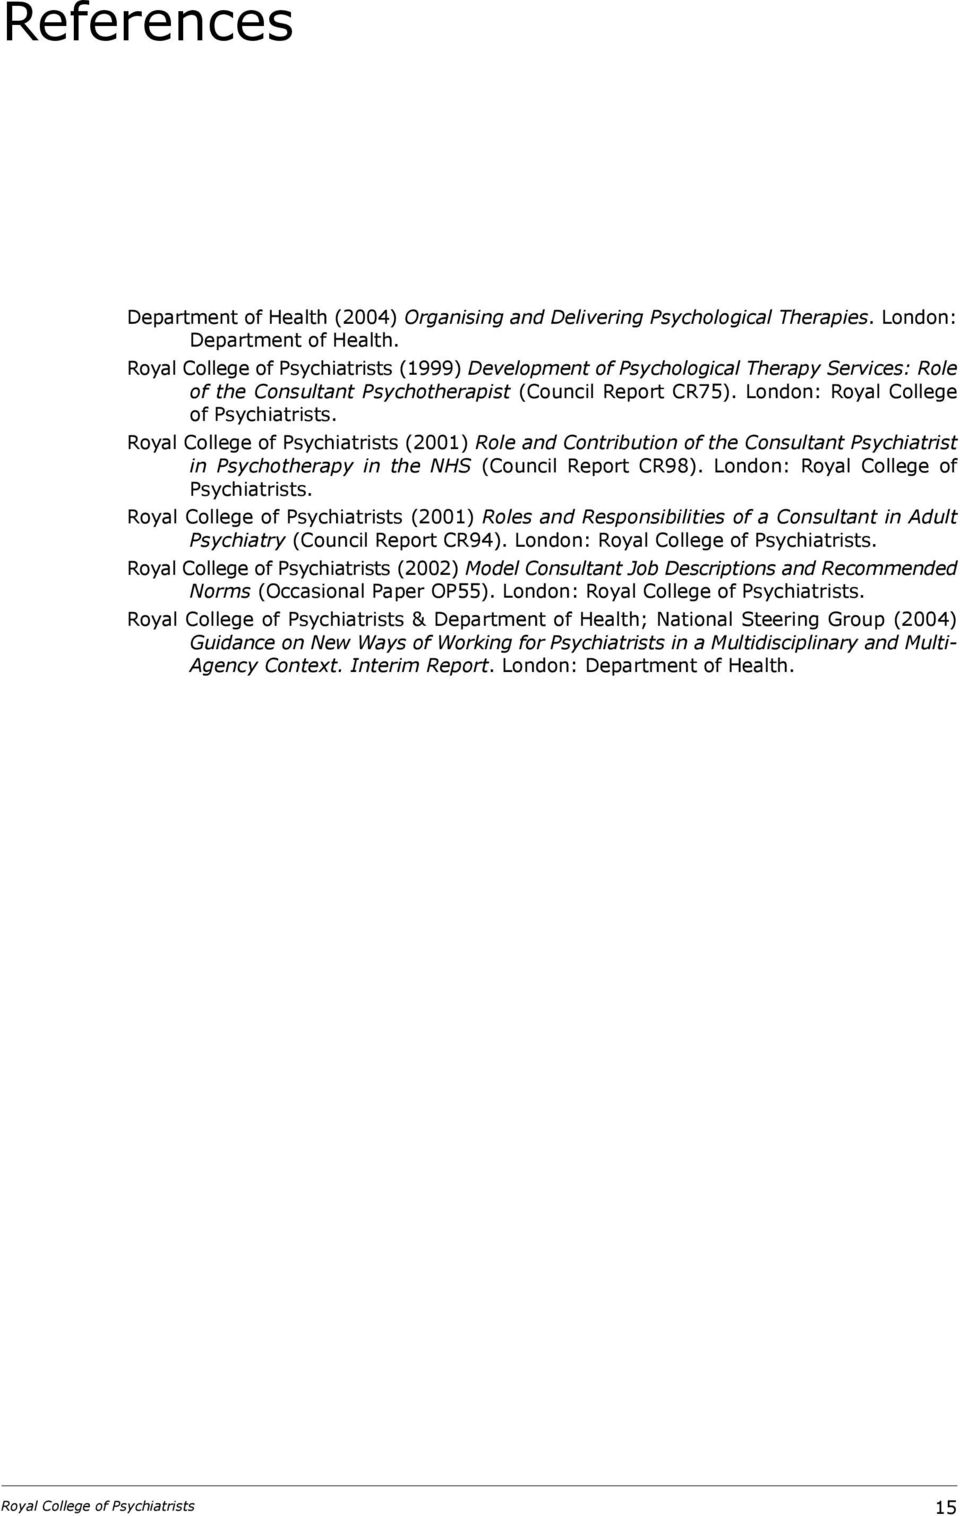 (2001) Role and Contribution of the Consultant Psychiatrist in Psychotherapy in the NHS (Council Report CR98). London: Royal College of Psychiatrists.